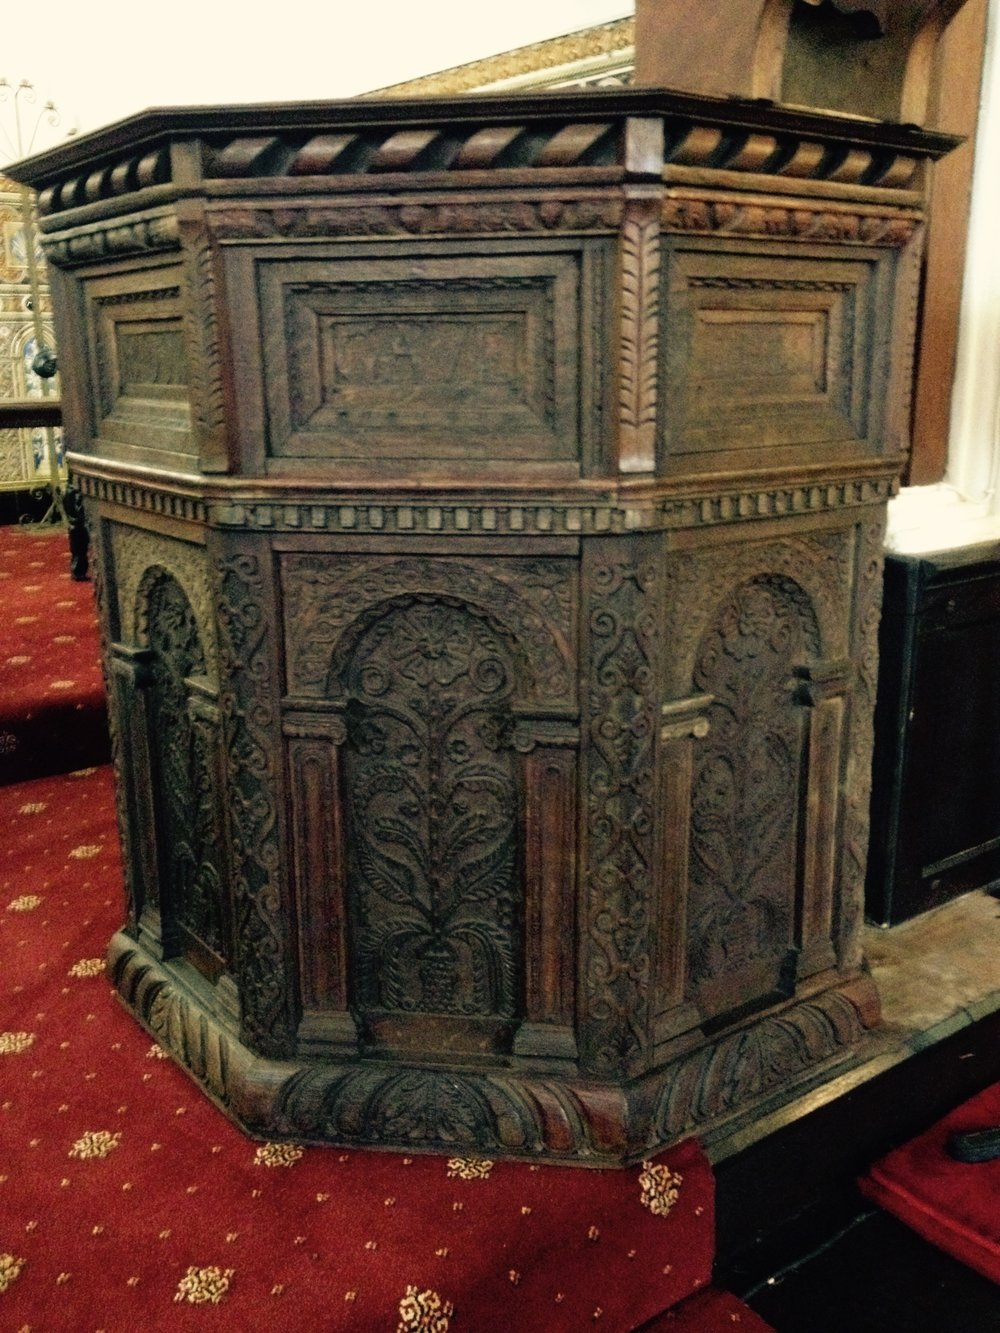 Baxter Pulpit